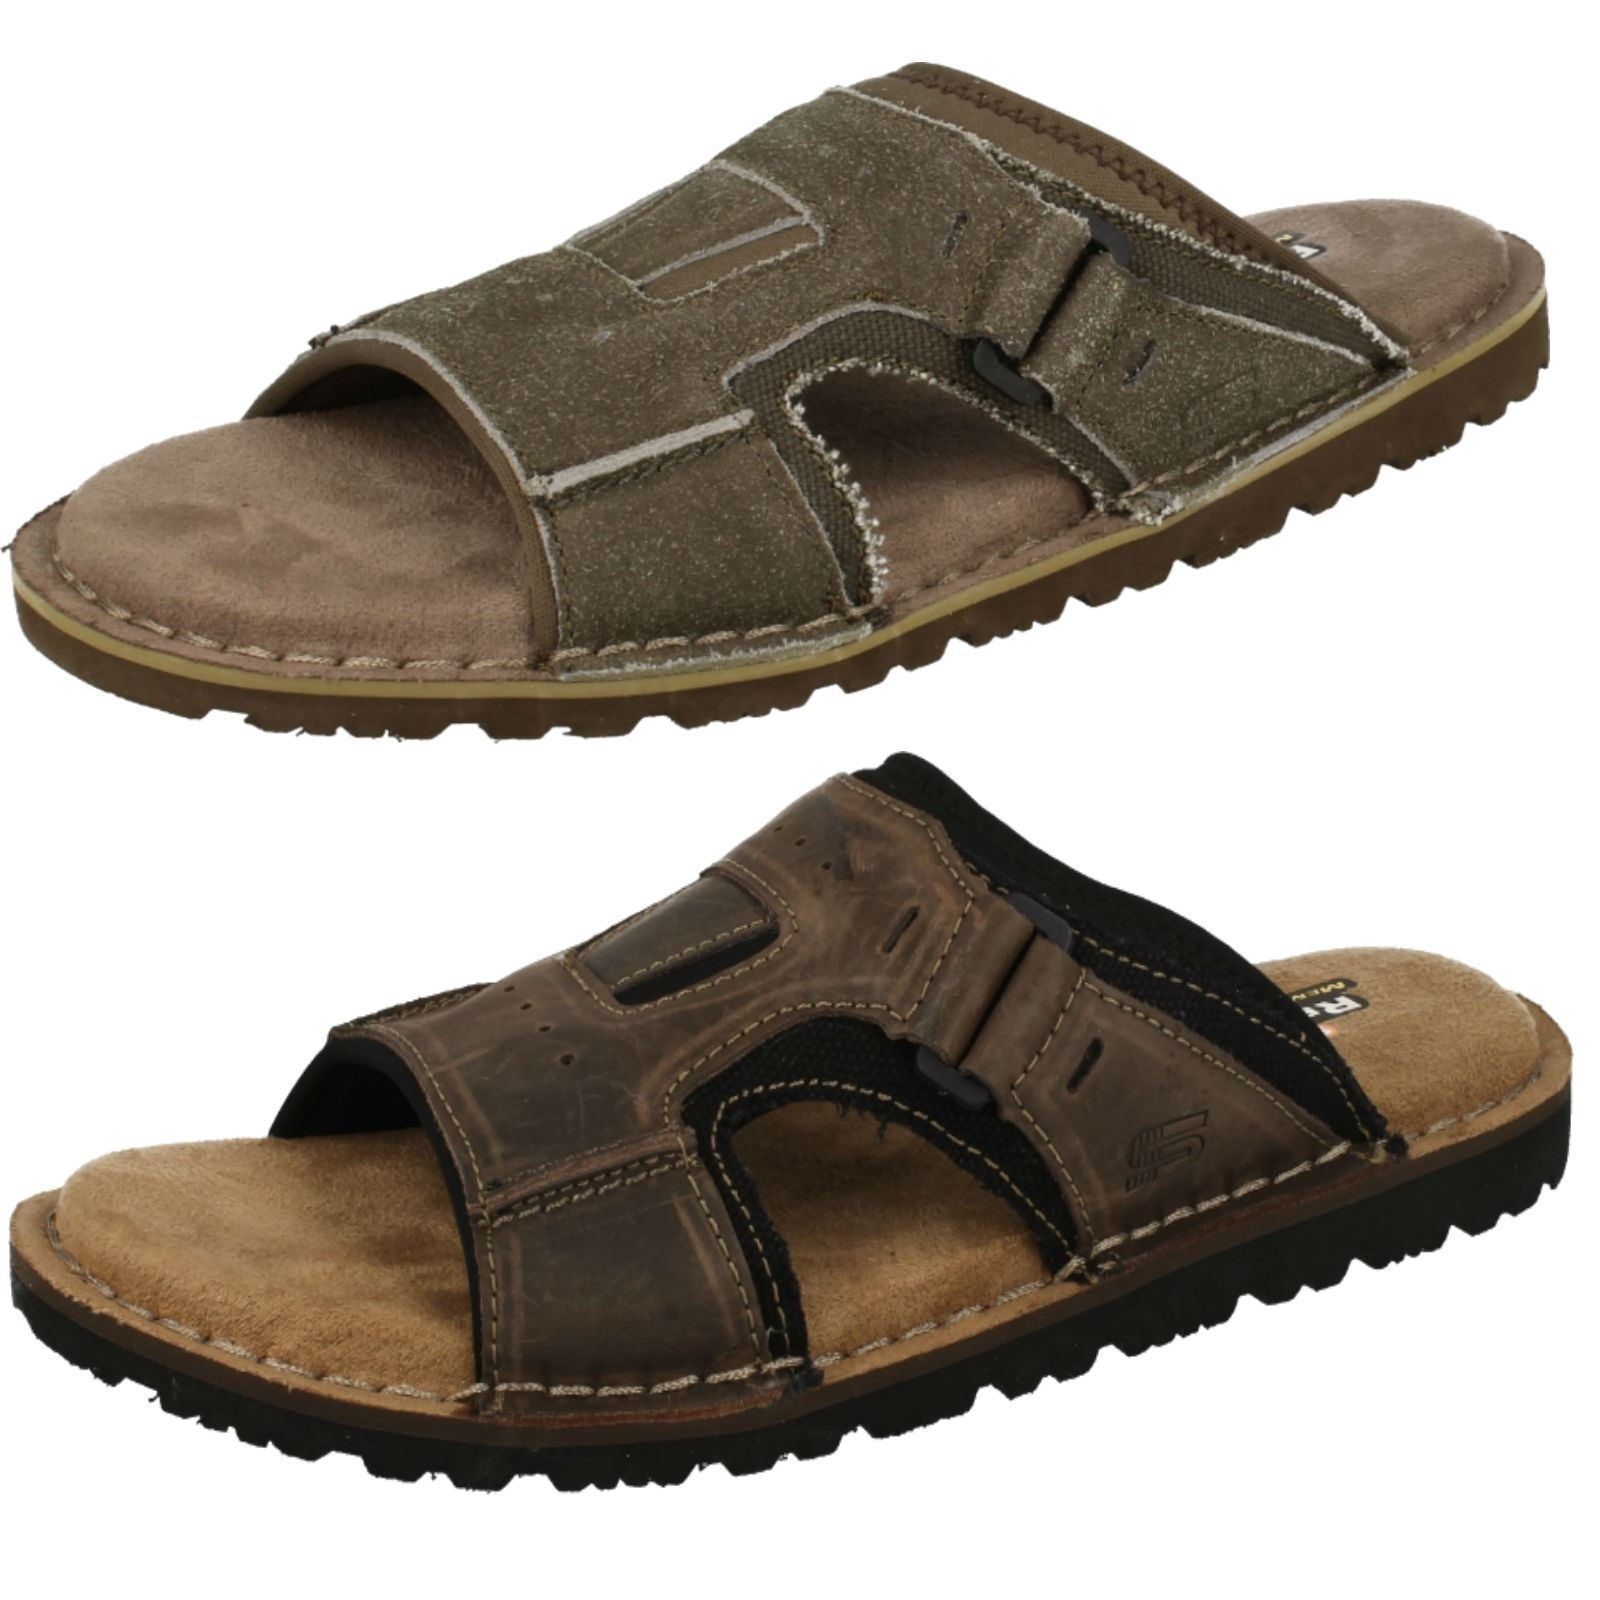 s Skechers     Memory Foam Relaxed Fit Sandals Golson 64148 1f5ace